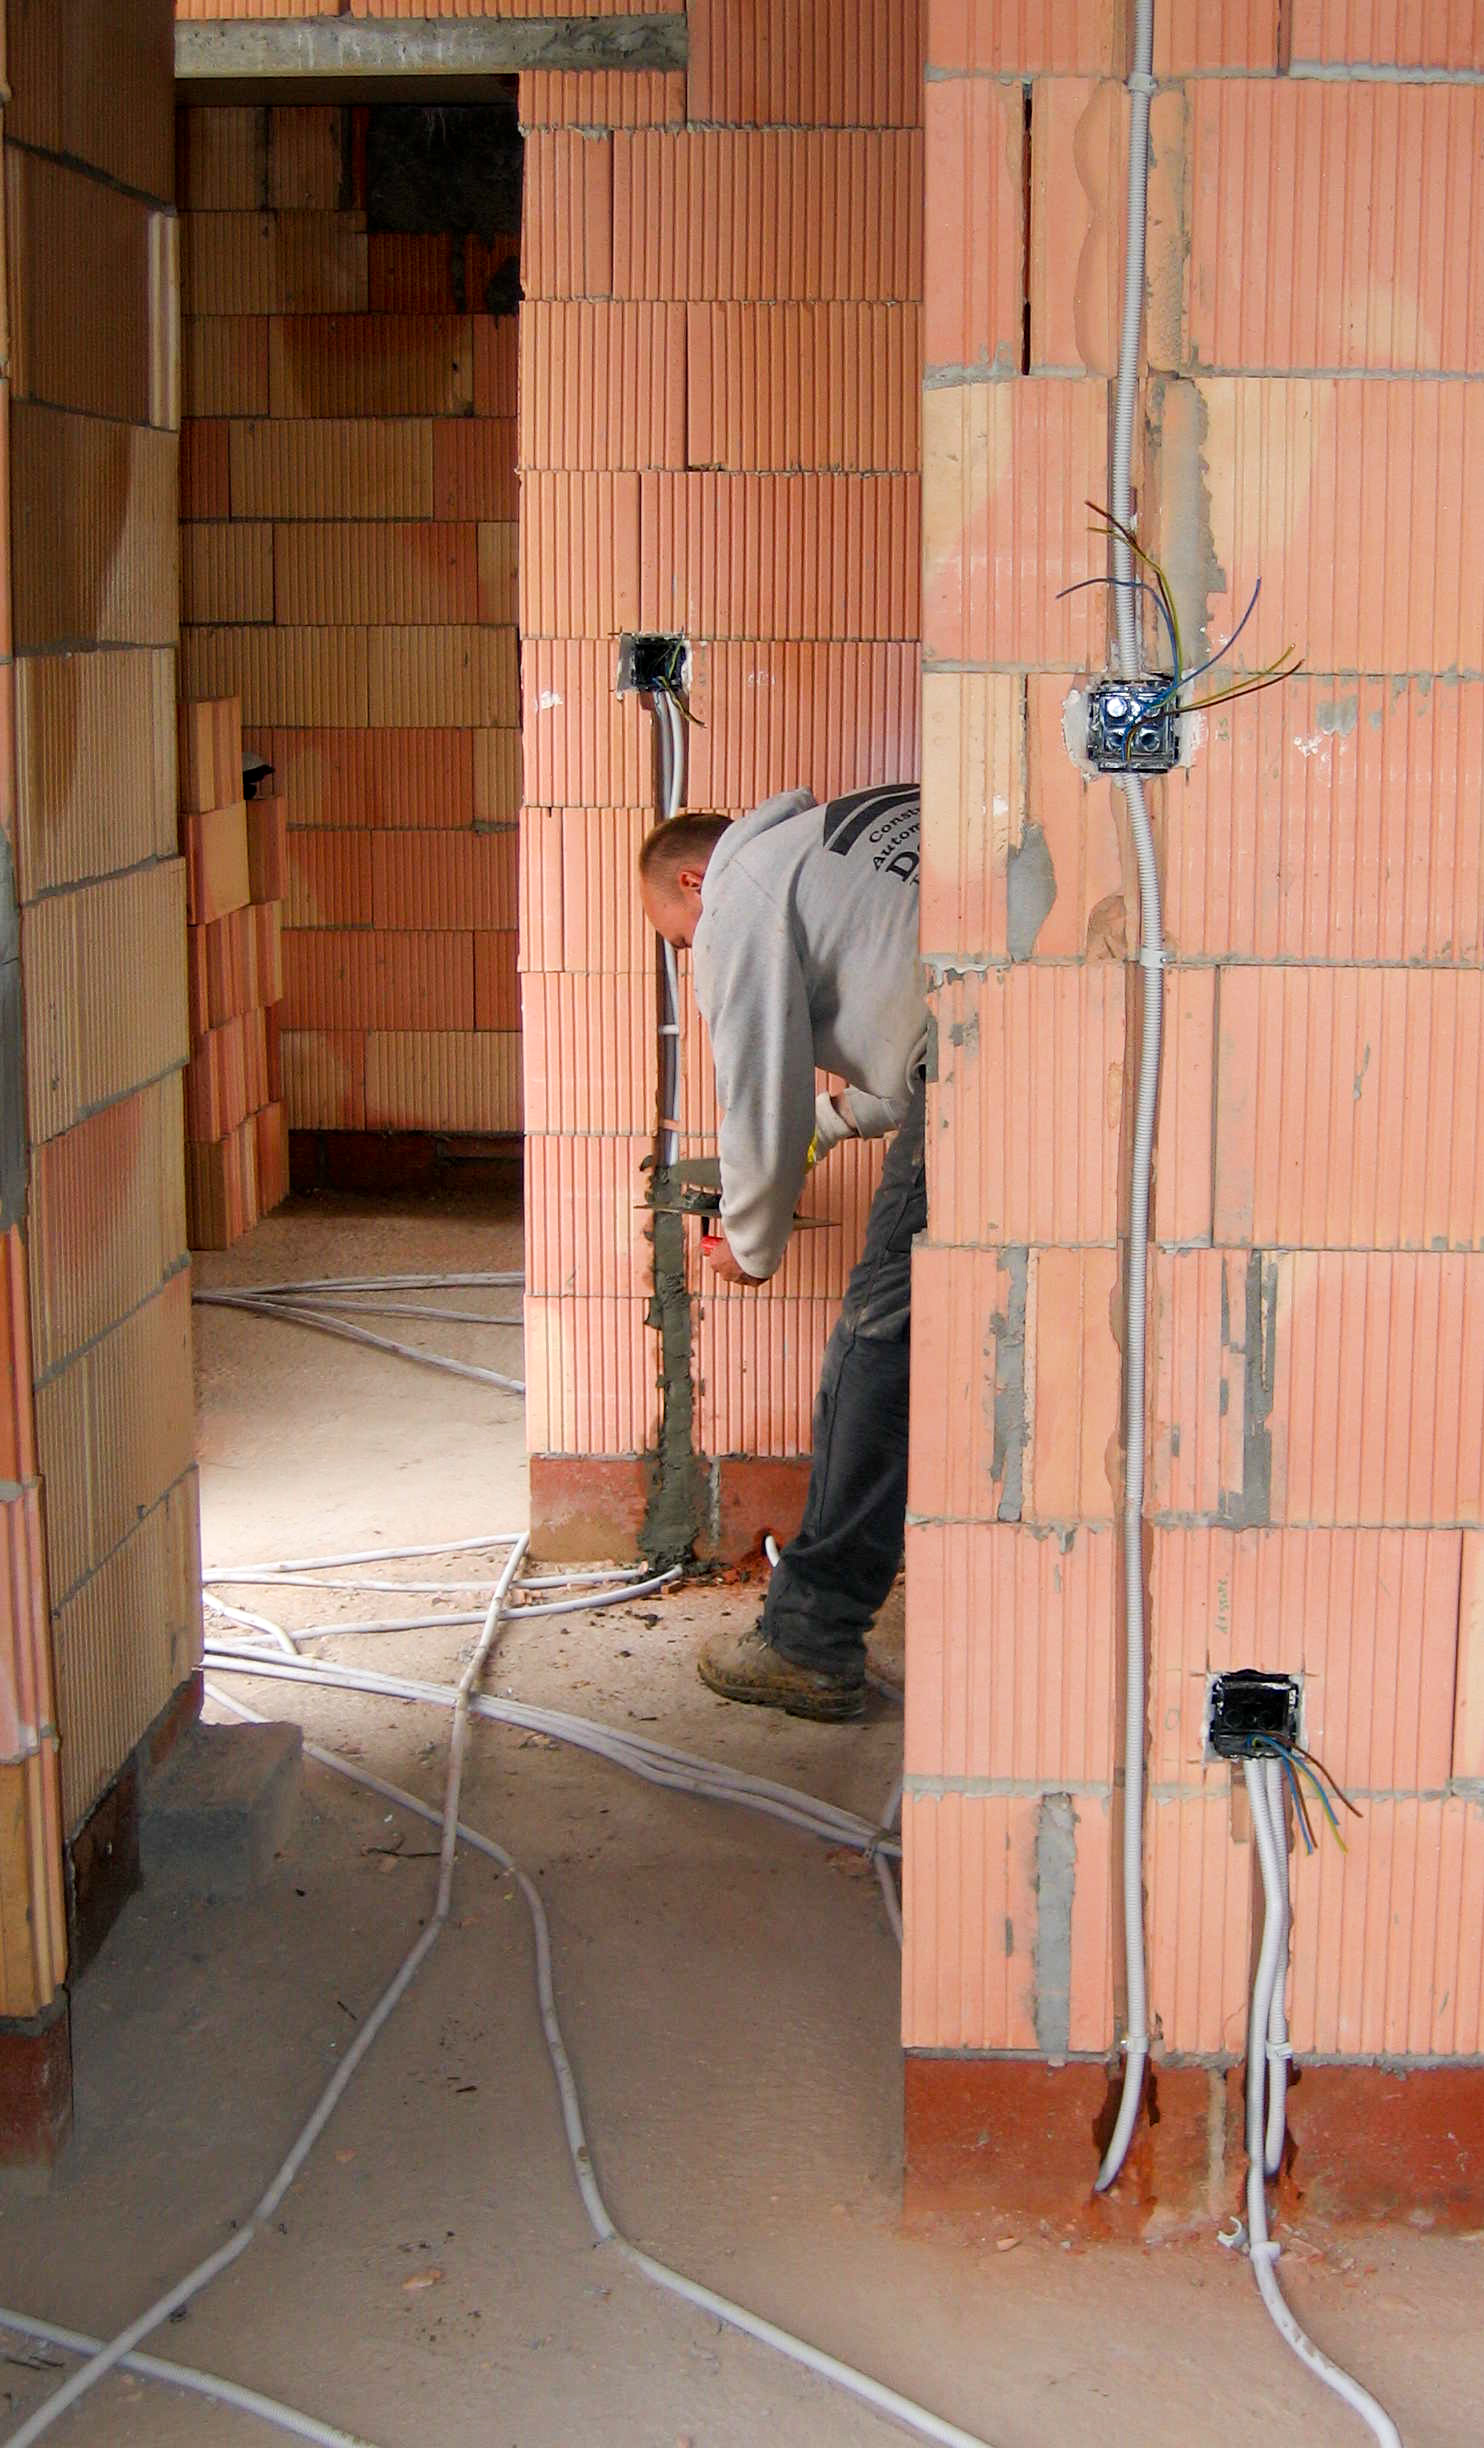 Electrical Wiring Installation : File installing electrical wiring g wikimedia commons